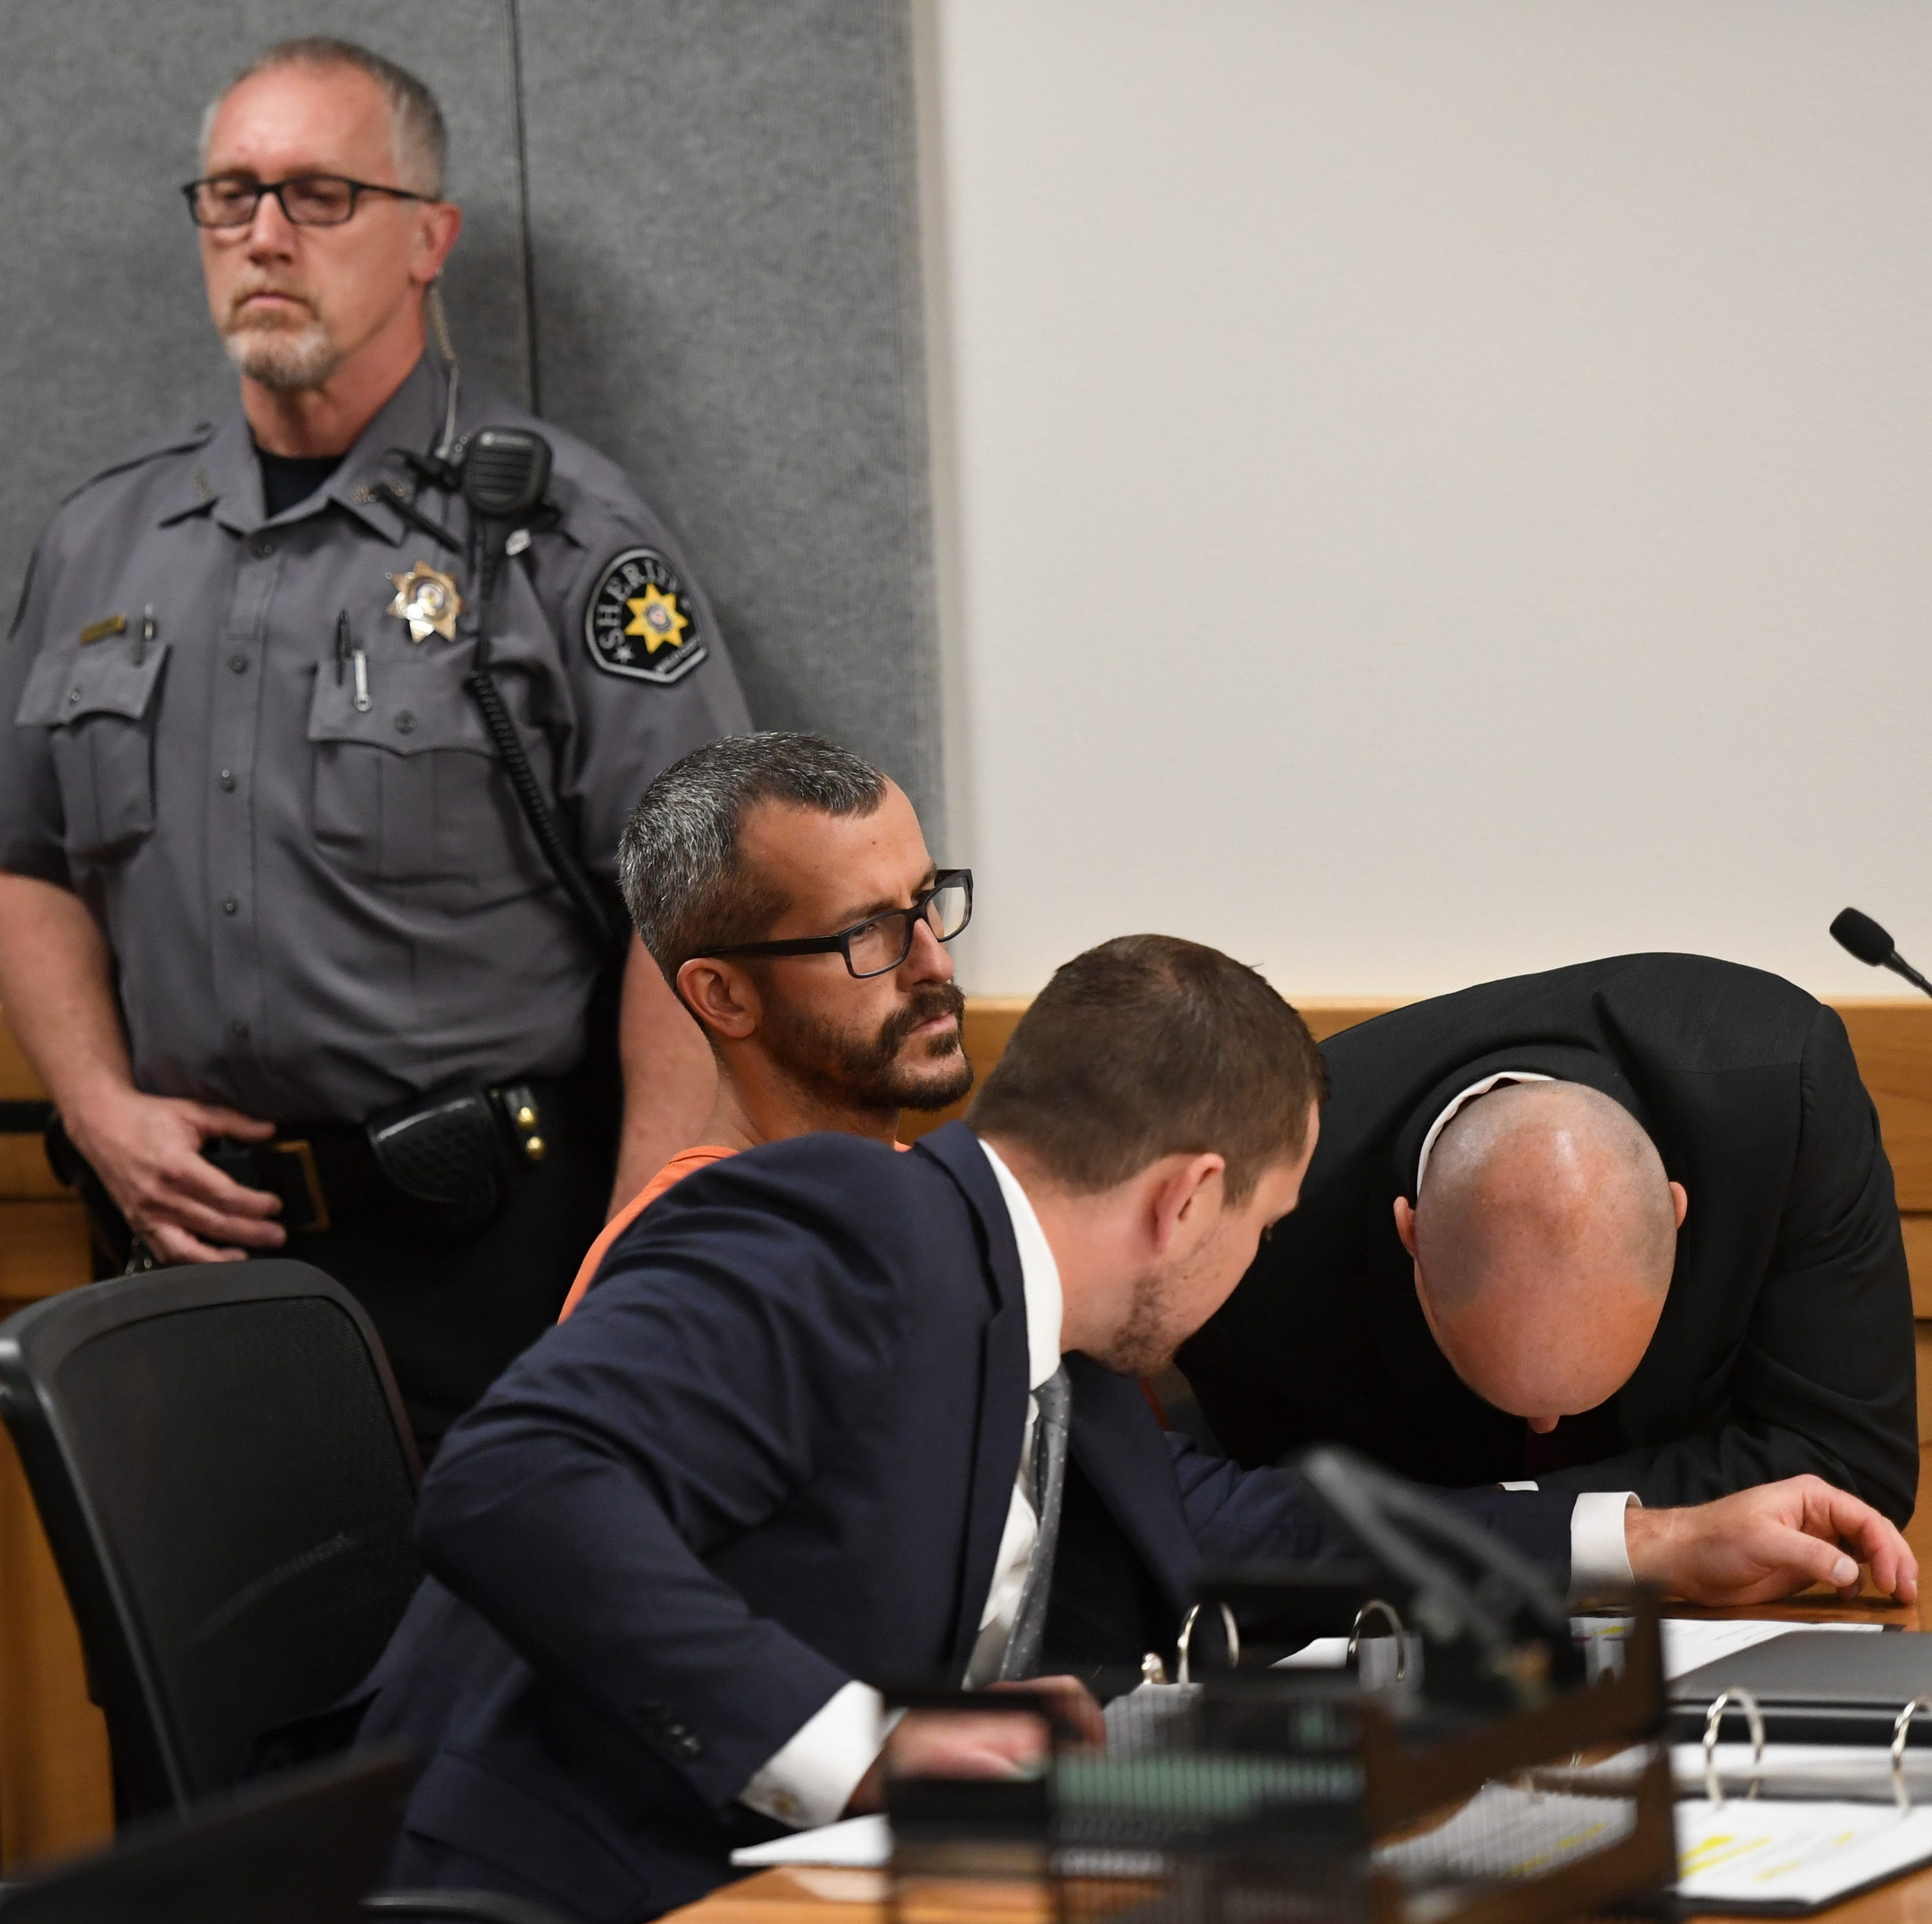 Court orders Weld DA to release autopsy reports to Christopher Watts' attorneys